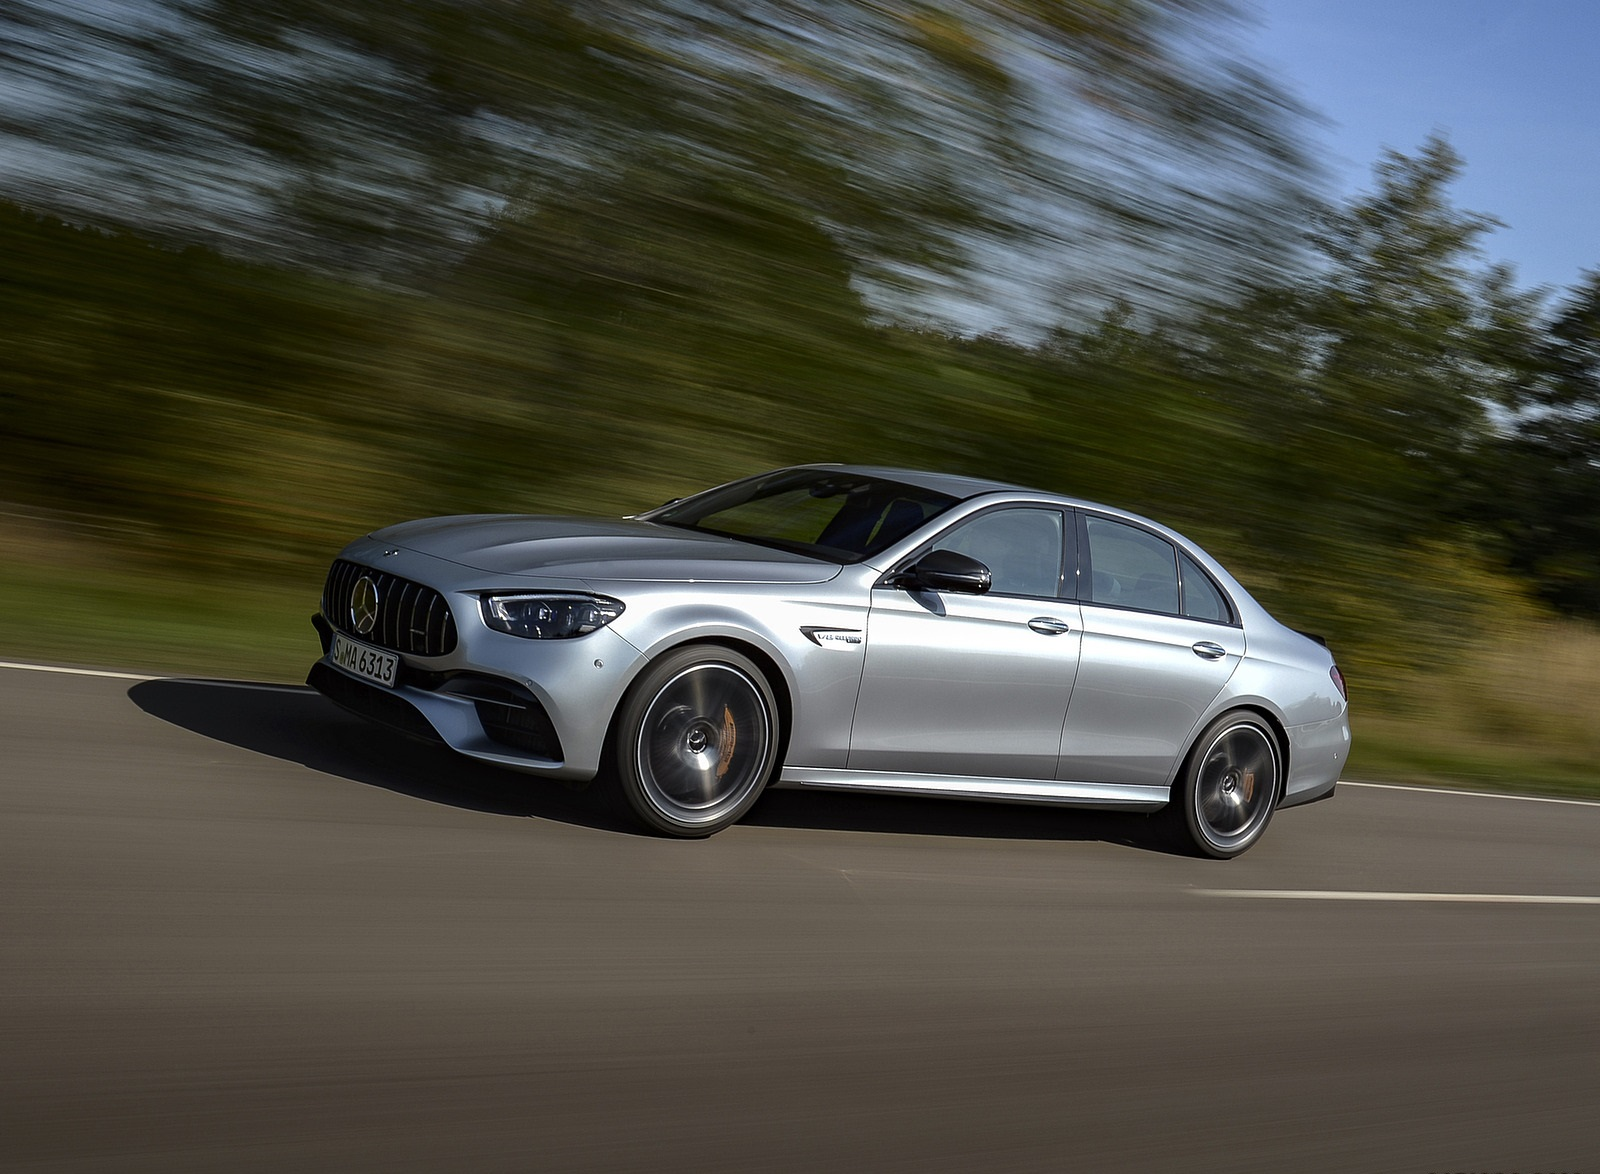 2021 Mercedes-AMG E 63 S 4MATIC+ (Color: High-Tech Silver Metallic) Front Three-Quarter Wallpapers (4)